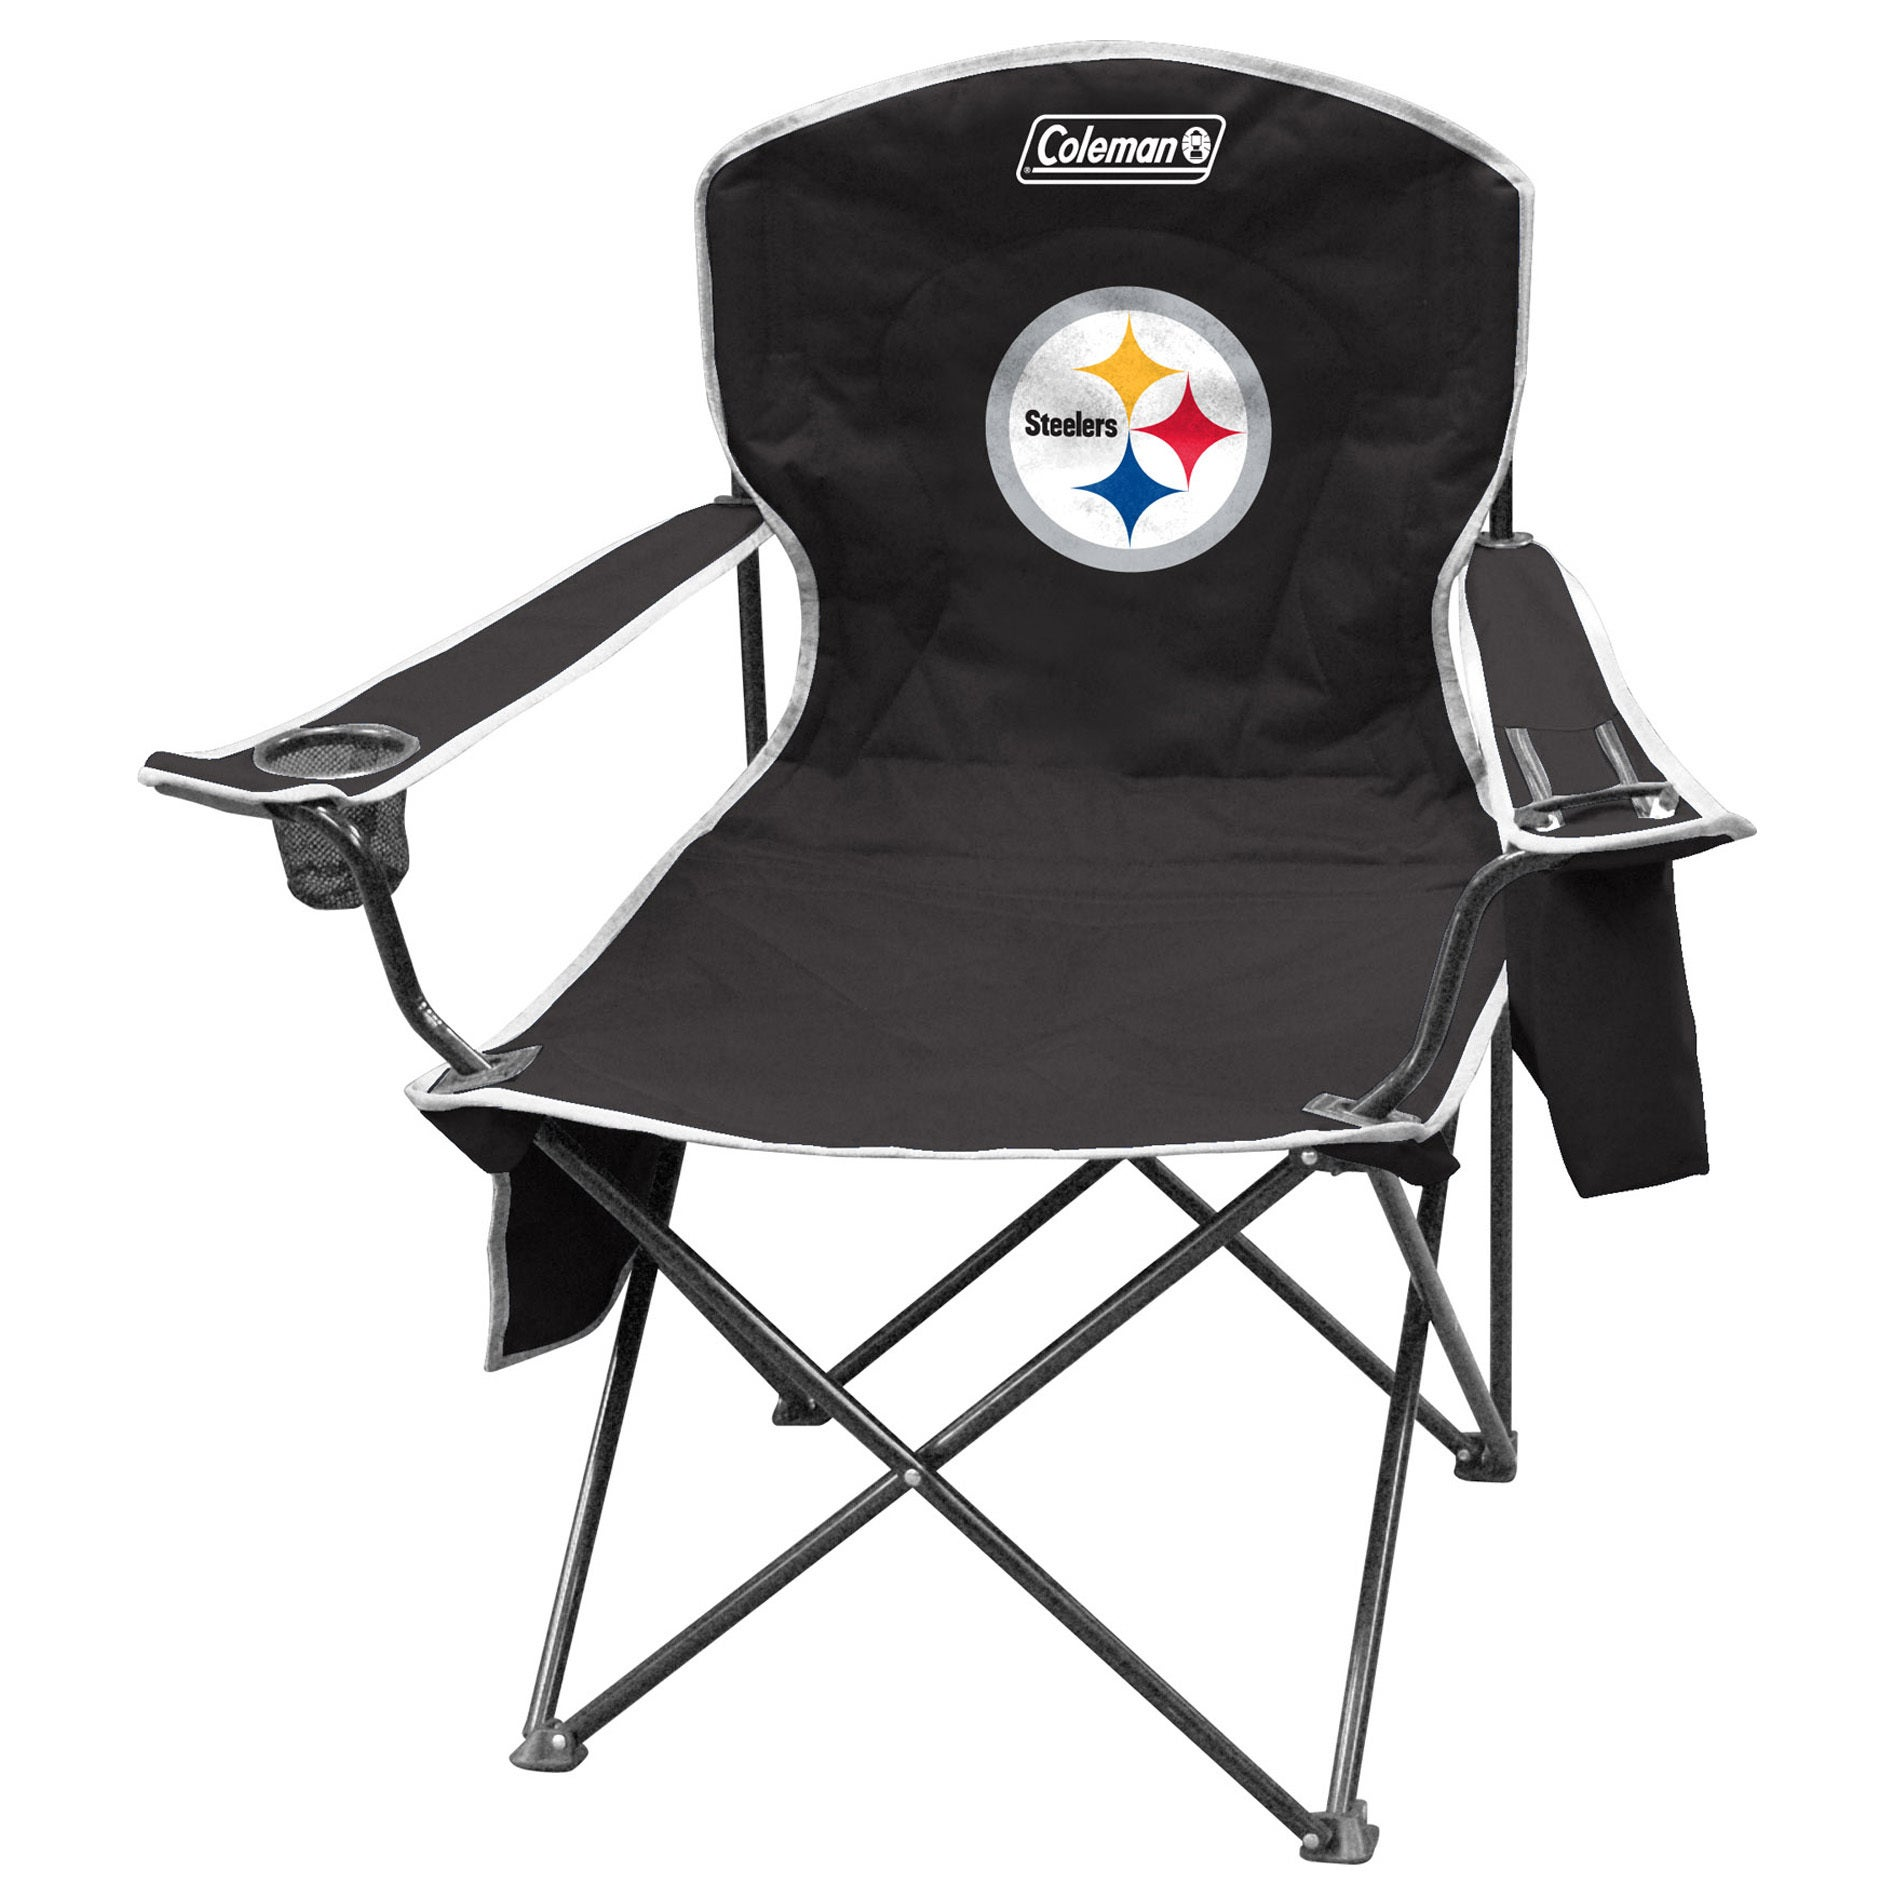 Merveilleux Shop Coleman NFL Pittsburgh Steelers XL Cooler Quad Chair   Free Shipping  On Orders Over $45   Overstock.com   8572439